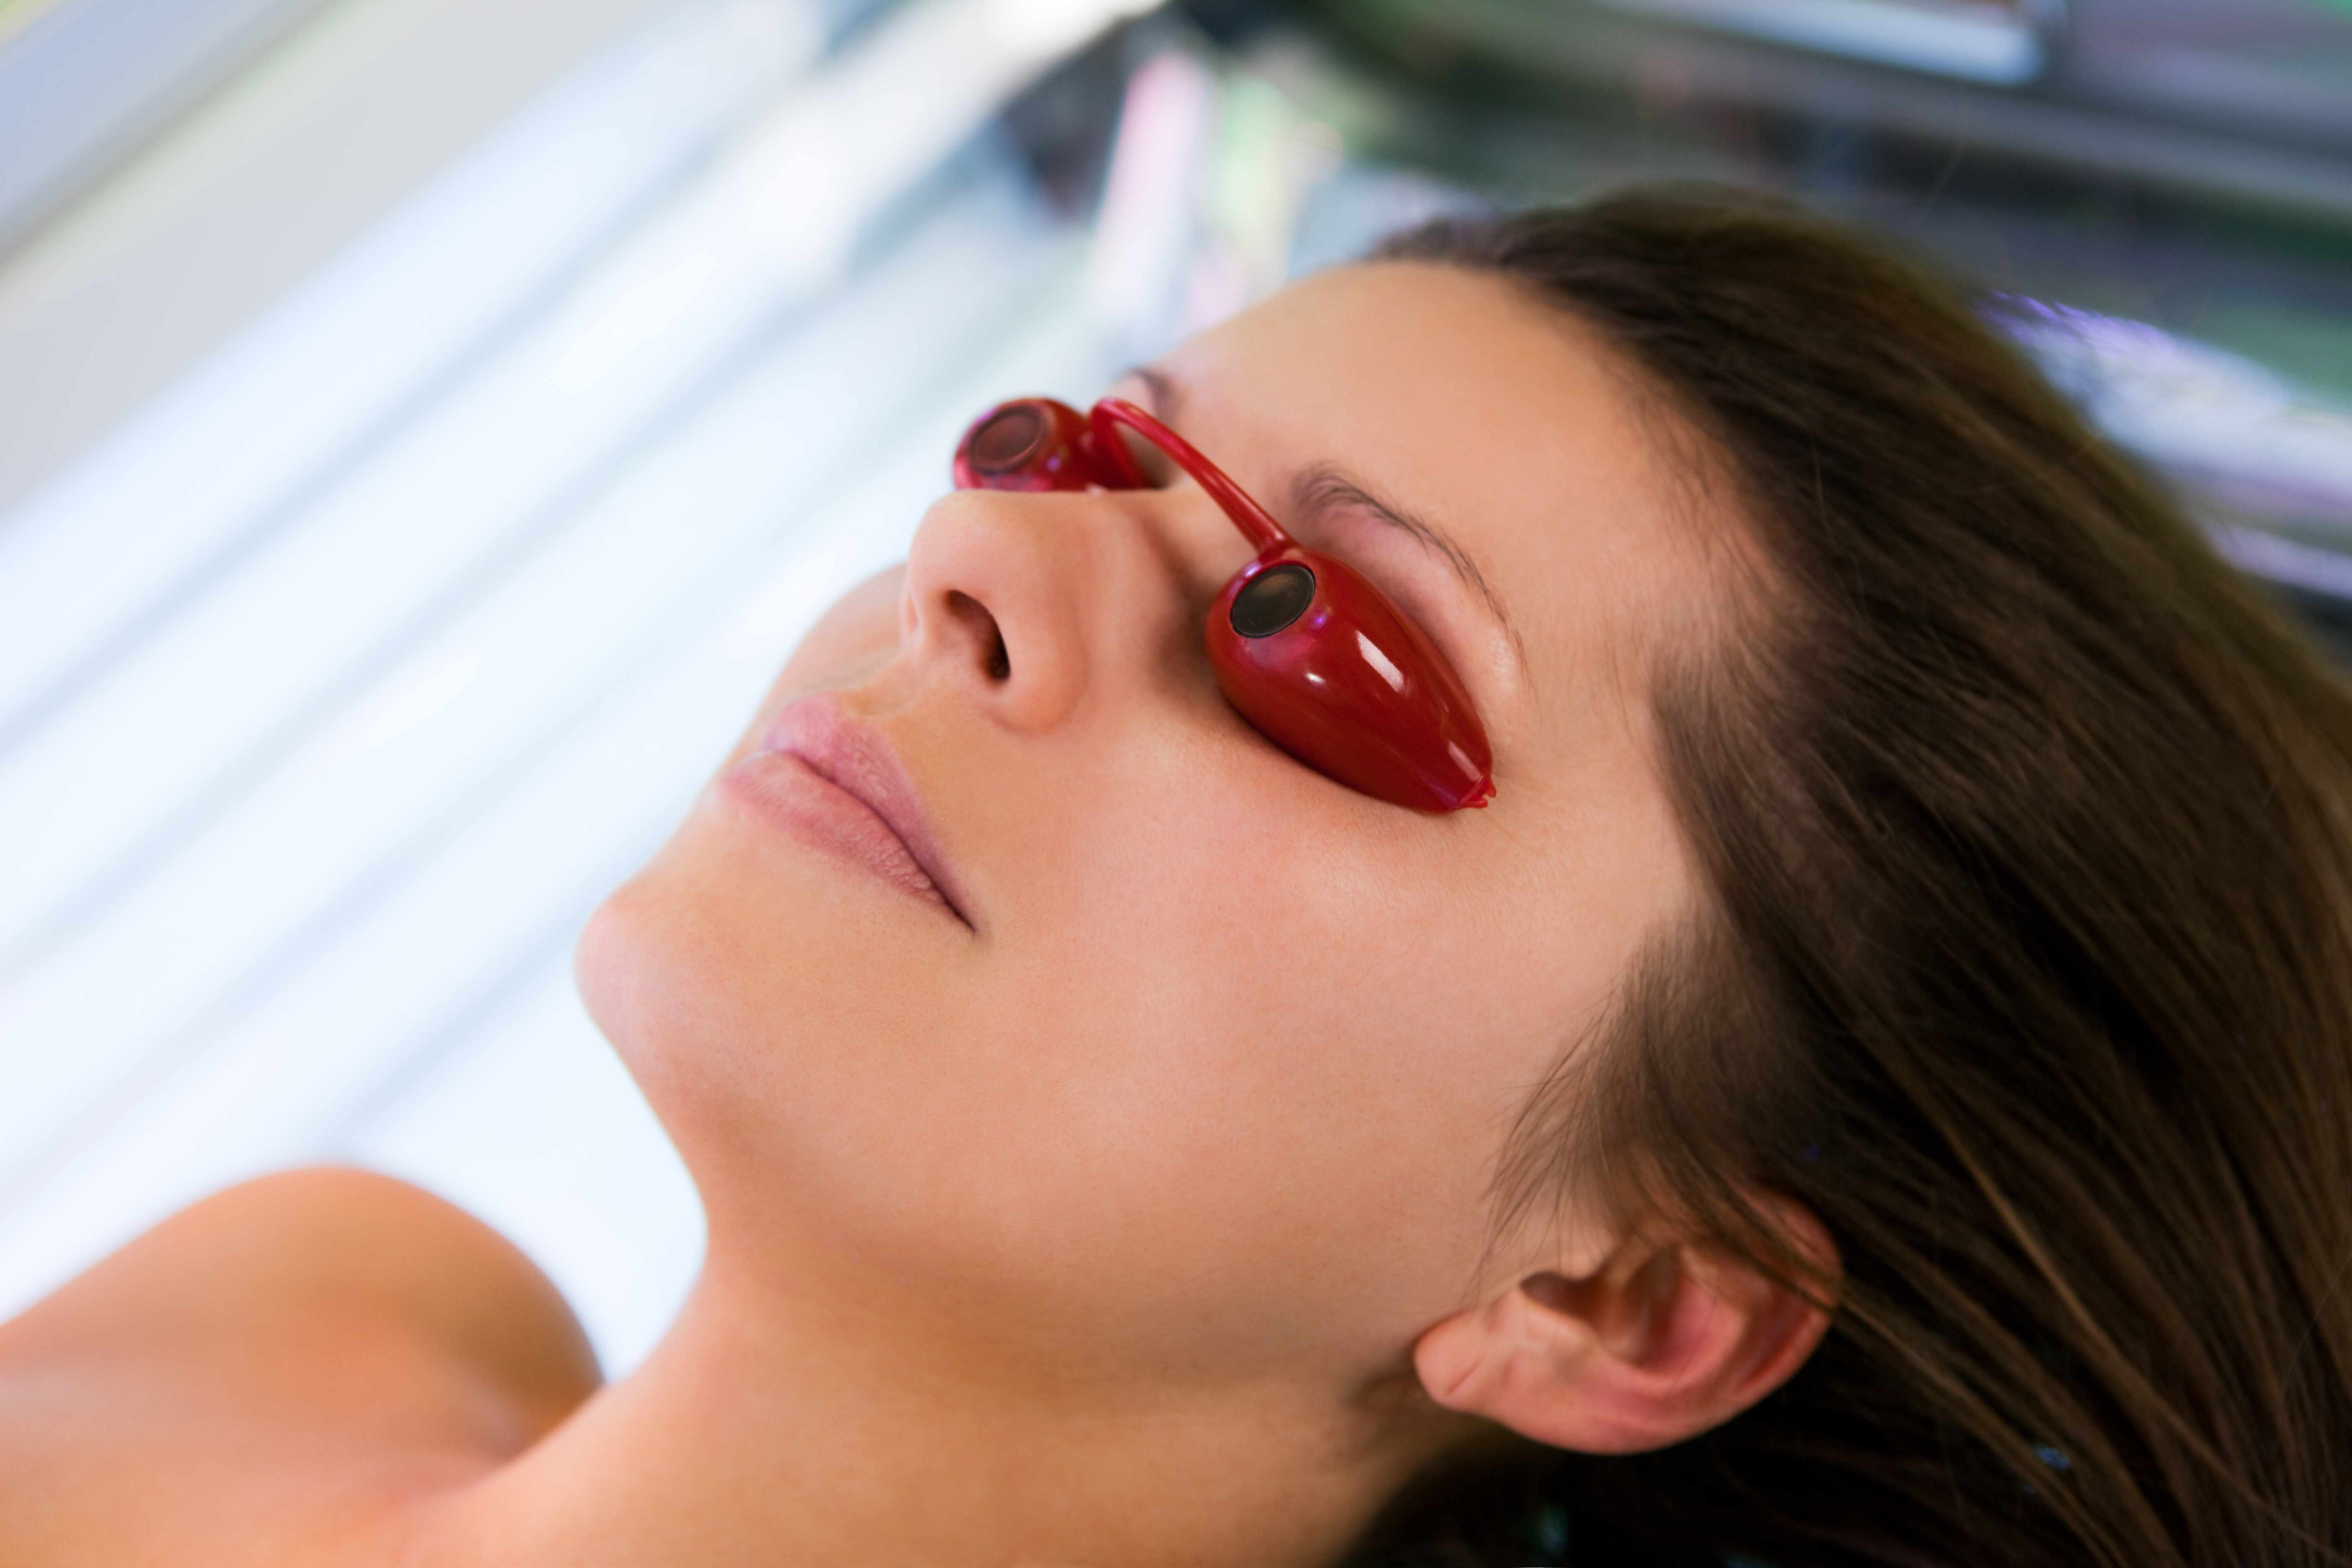 a young woman in tanning bed wearing eye protecting goggles